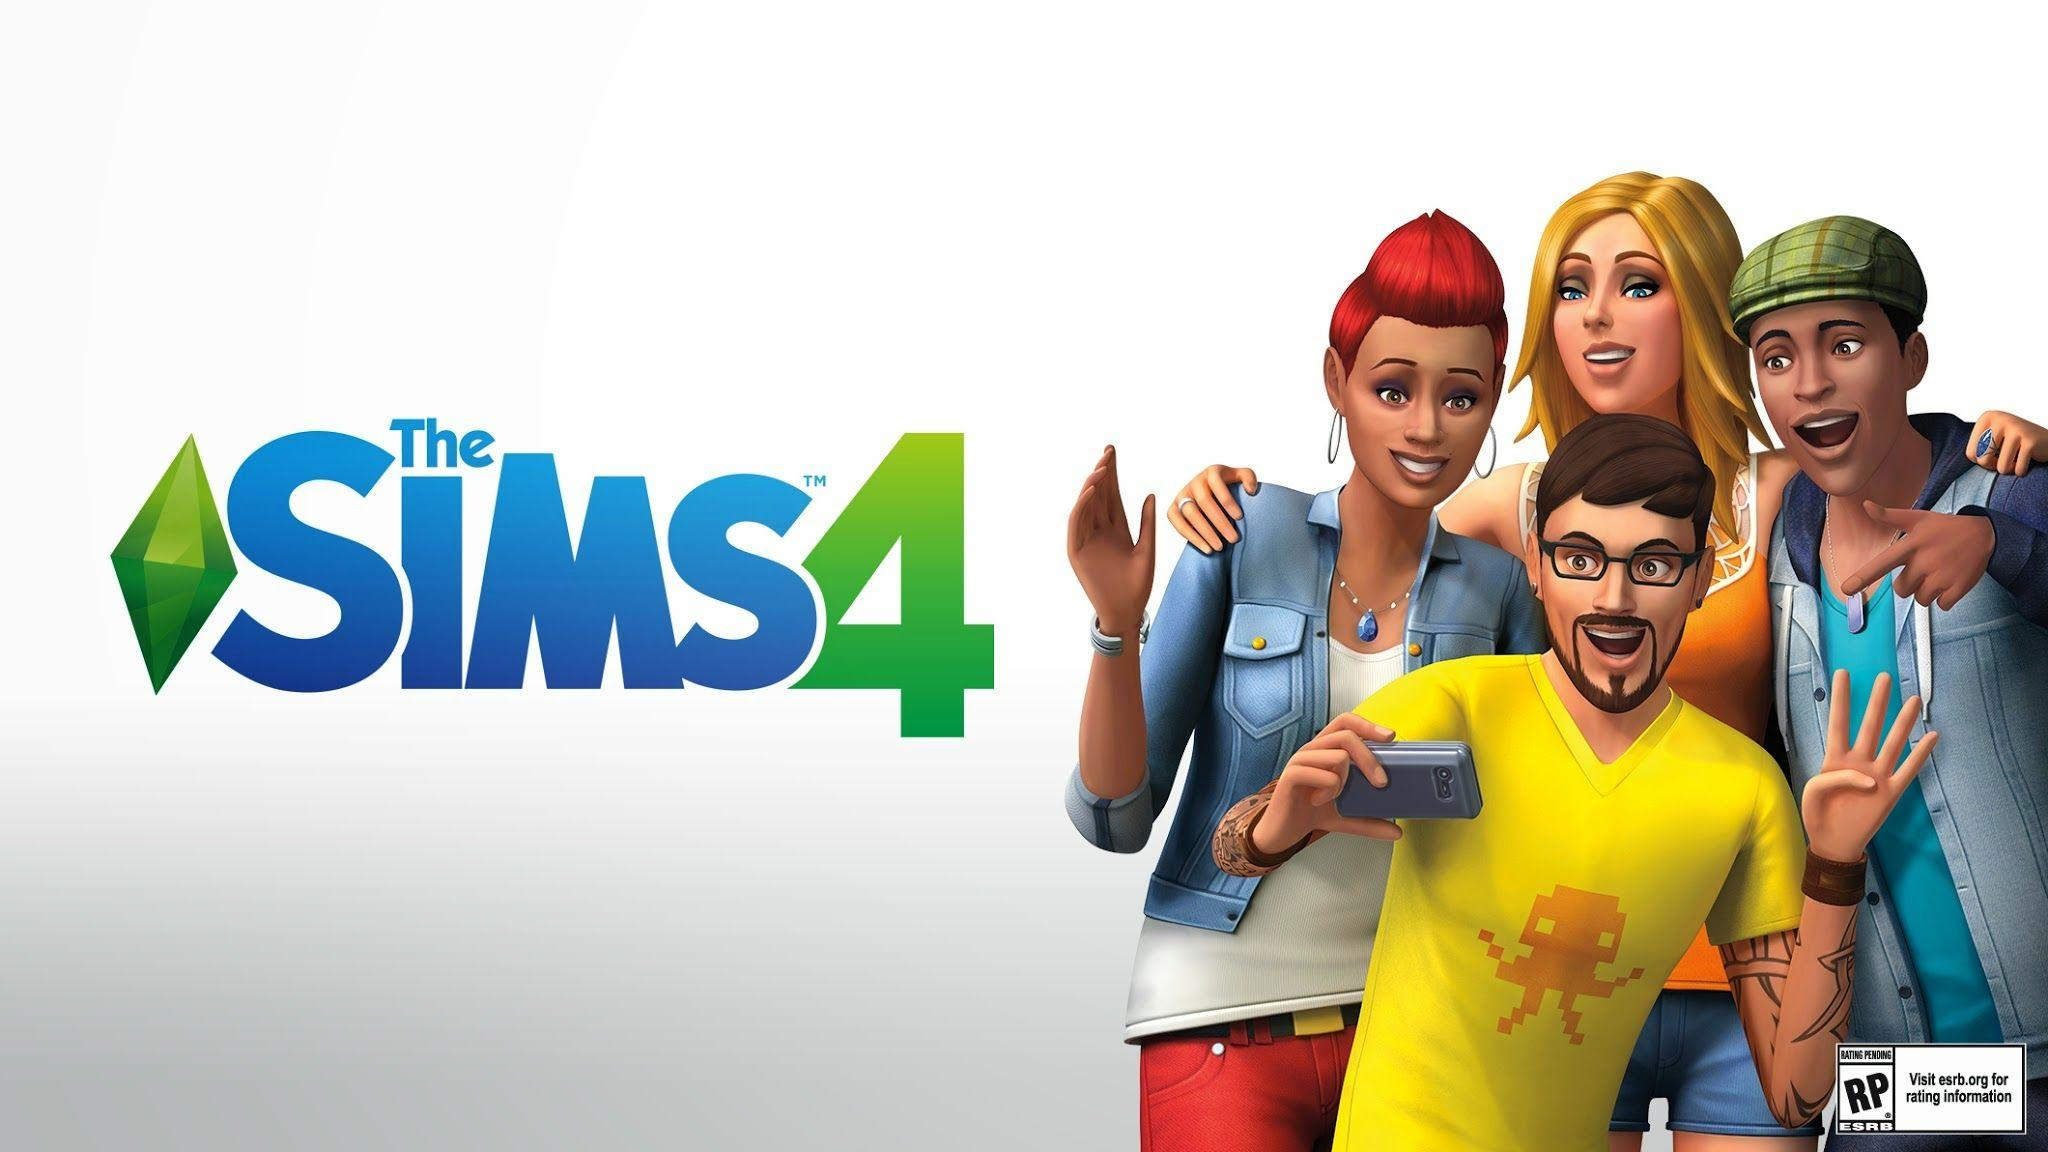 The Sims 4 Wallpapers – Dota 2 and E